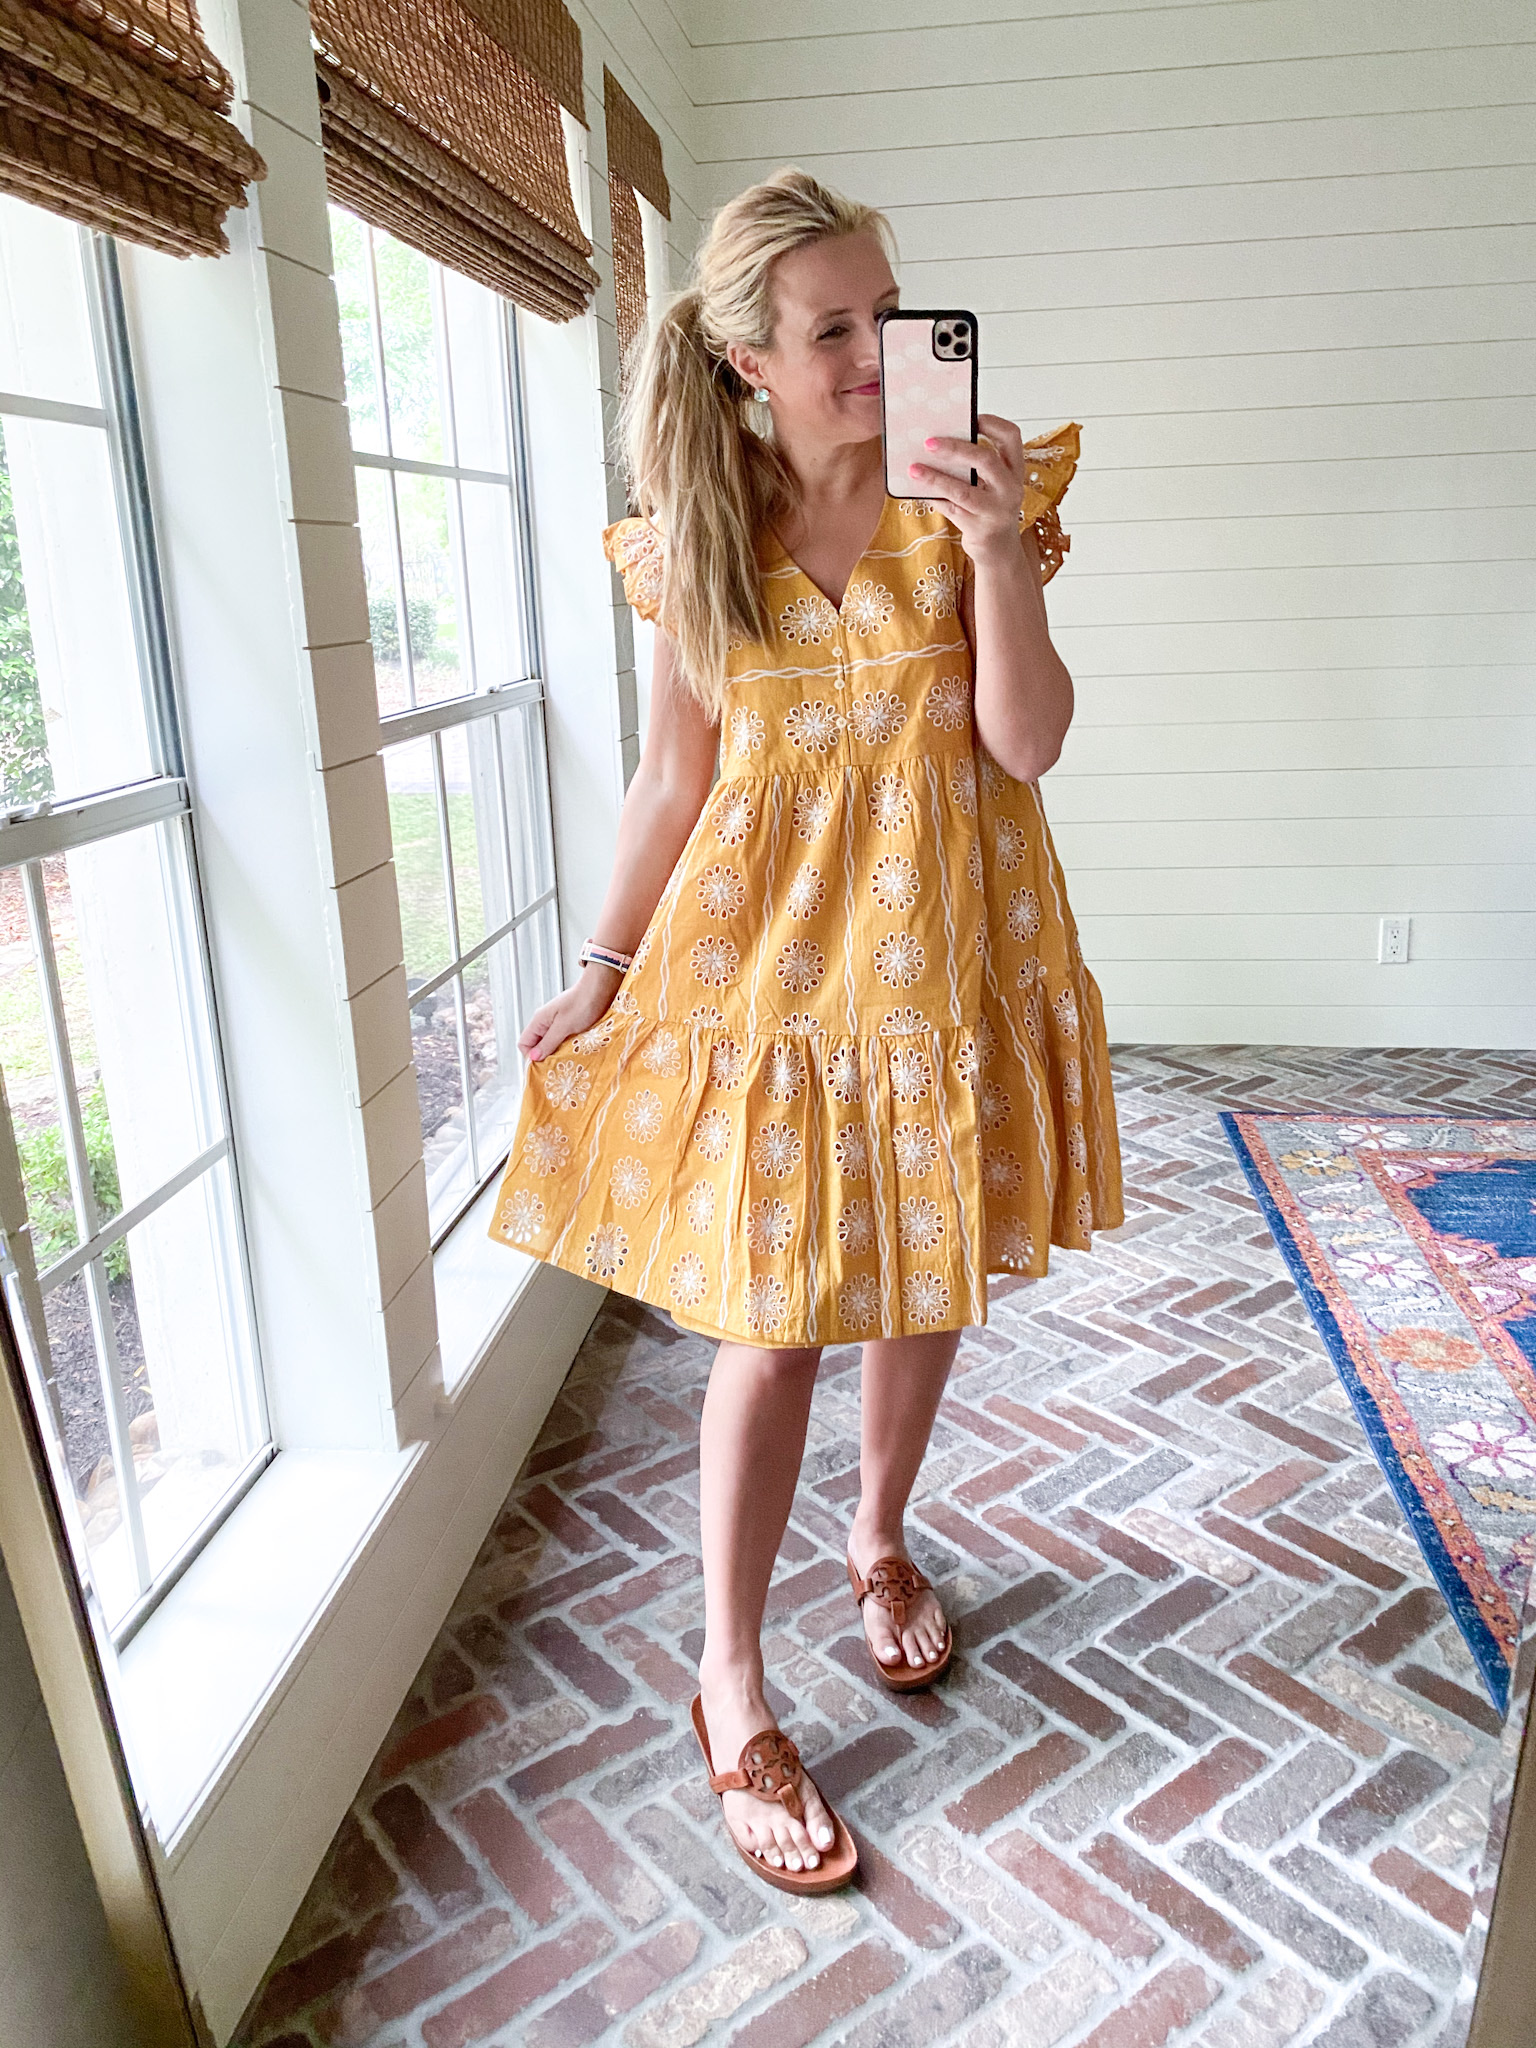 Loft Clothing by popular Houston fashion blog, The House of Fancy: image of a woman wearing a Loft yellow and white eyelet dress with brown Tory Burch slide sandals.